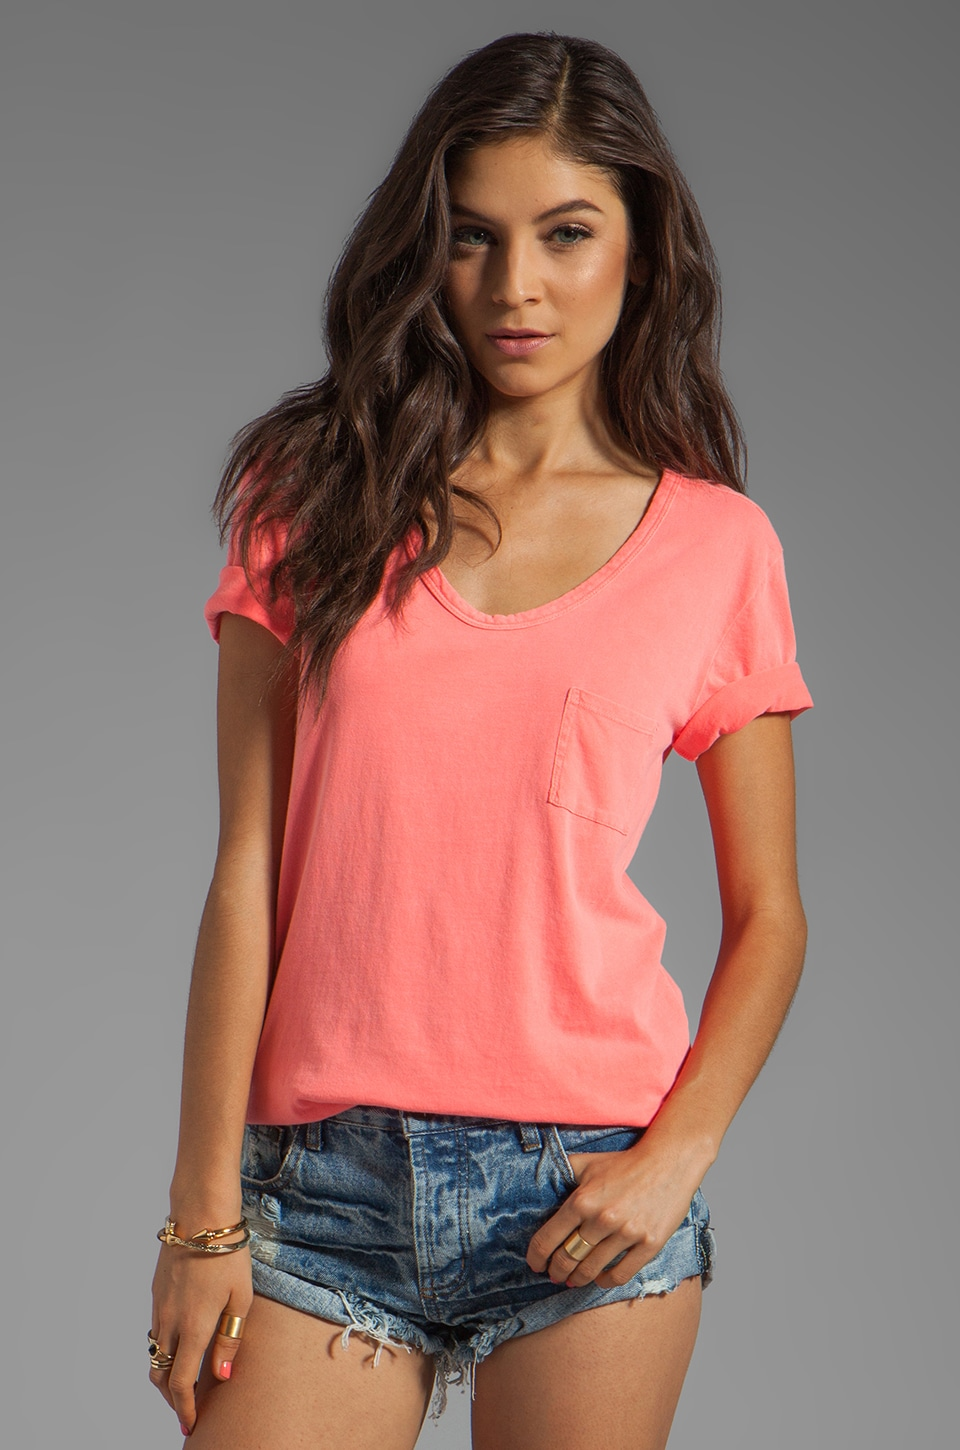 Bobi Lightweight Jersey Scoop Neck Tee in Neon Coral